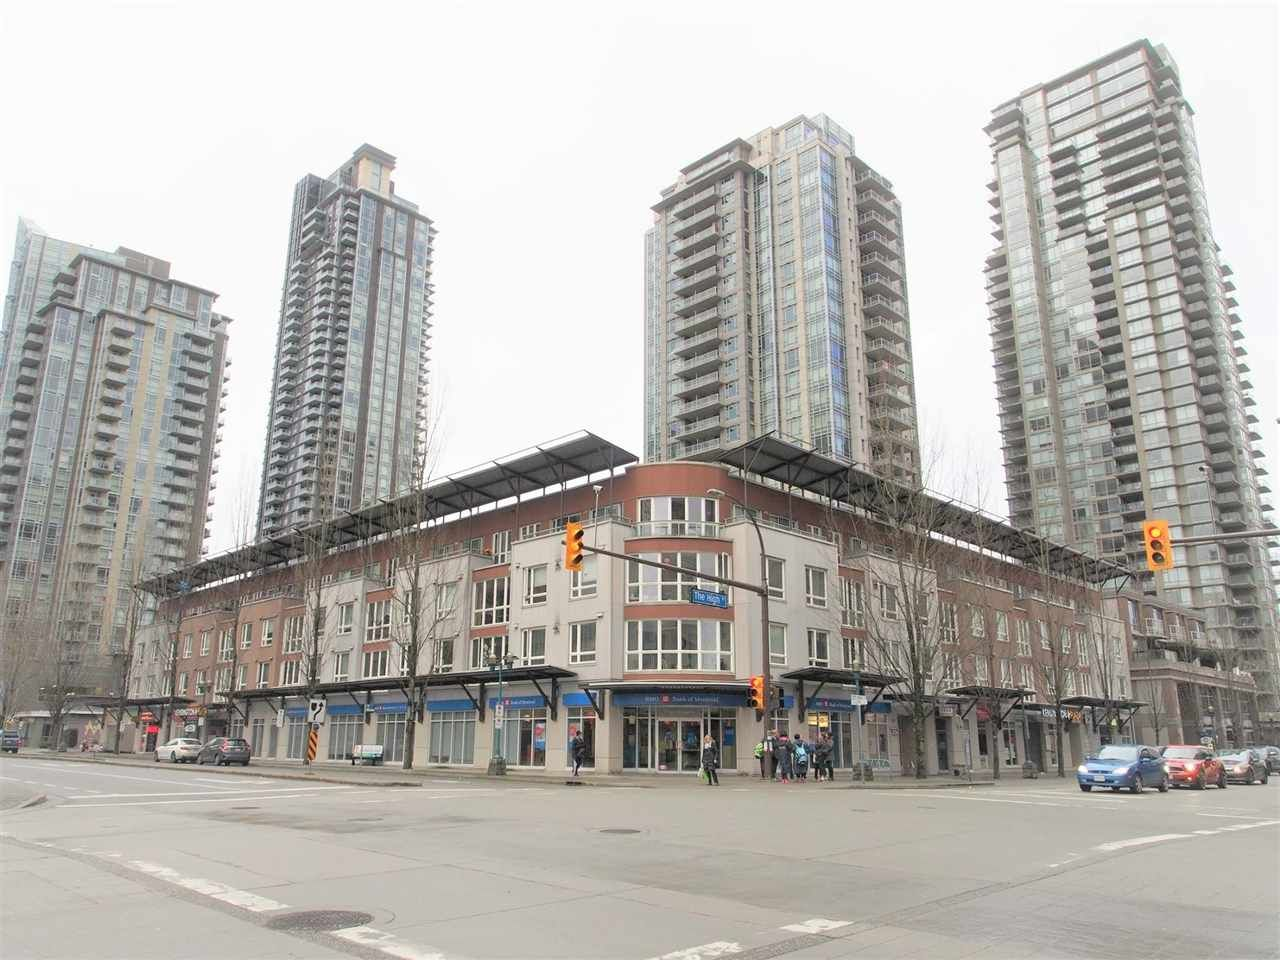 Main Photo: 302 1163 THE HIGH Street in Coquitlam: North Coquitlam Condo for sale : MLS®# R2164821